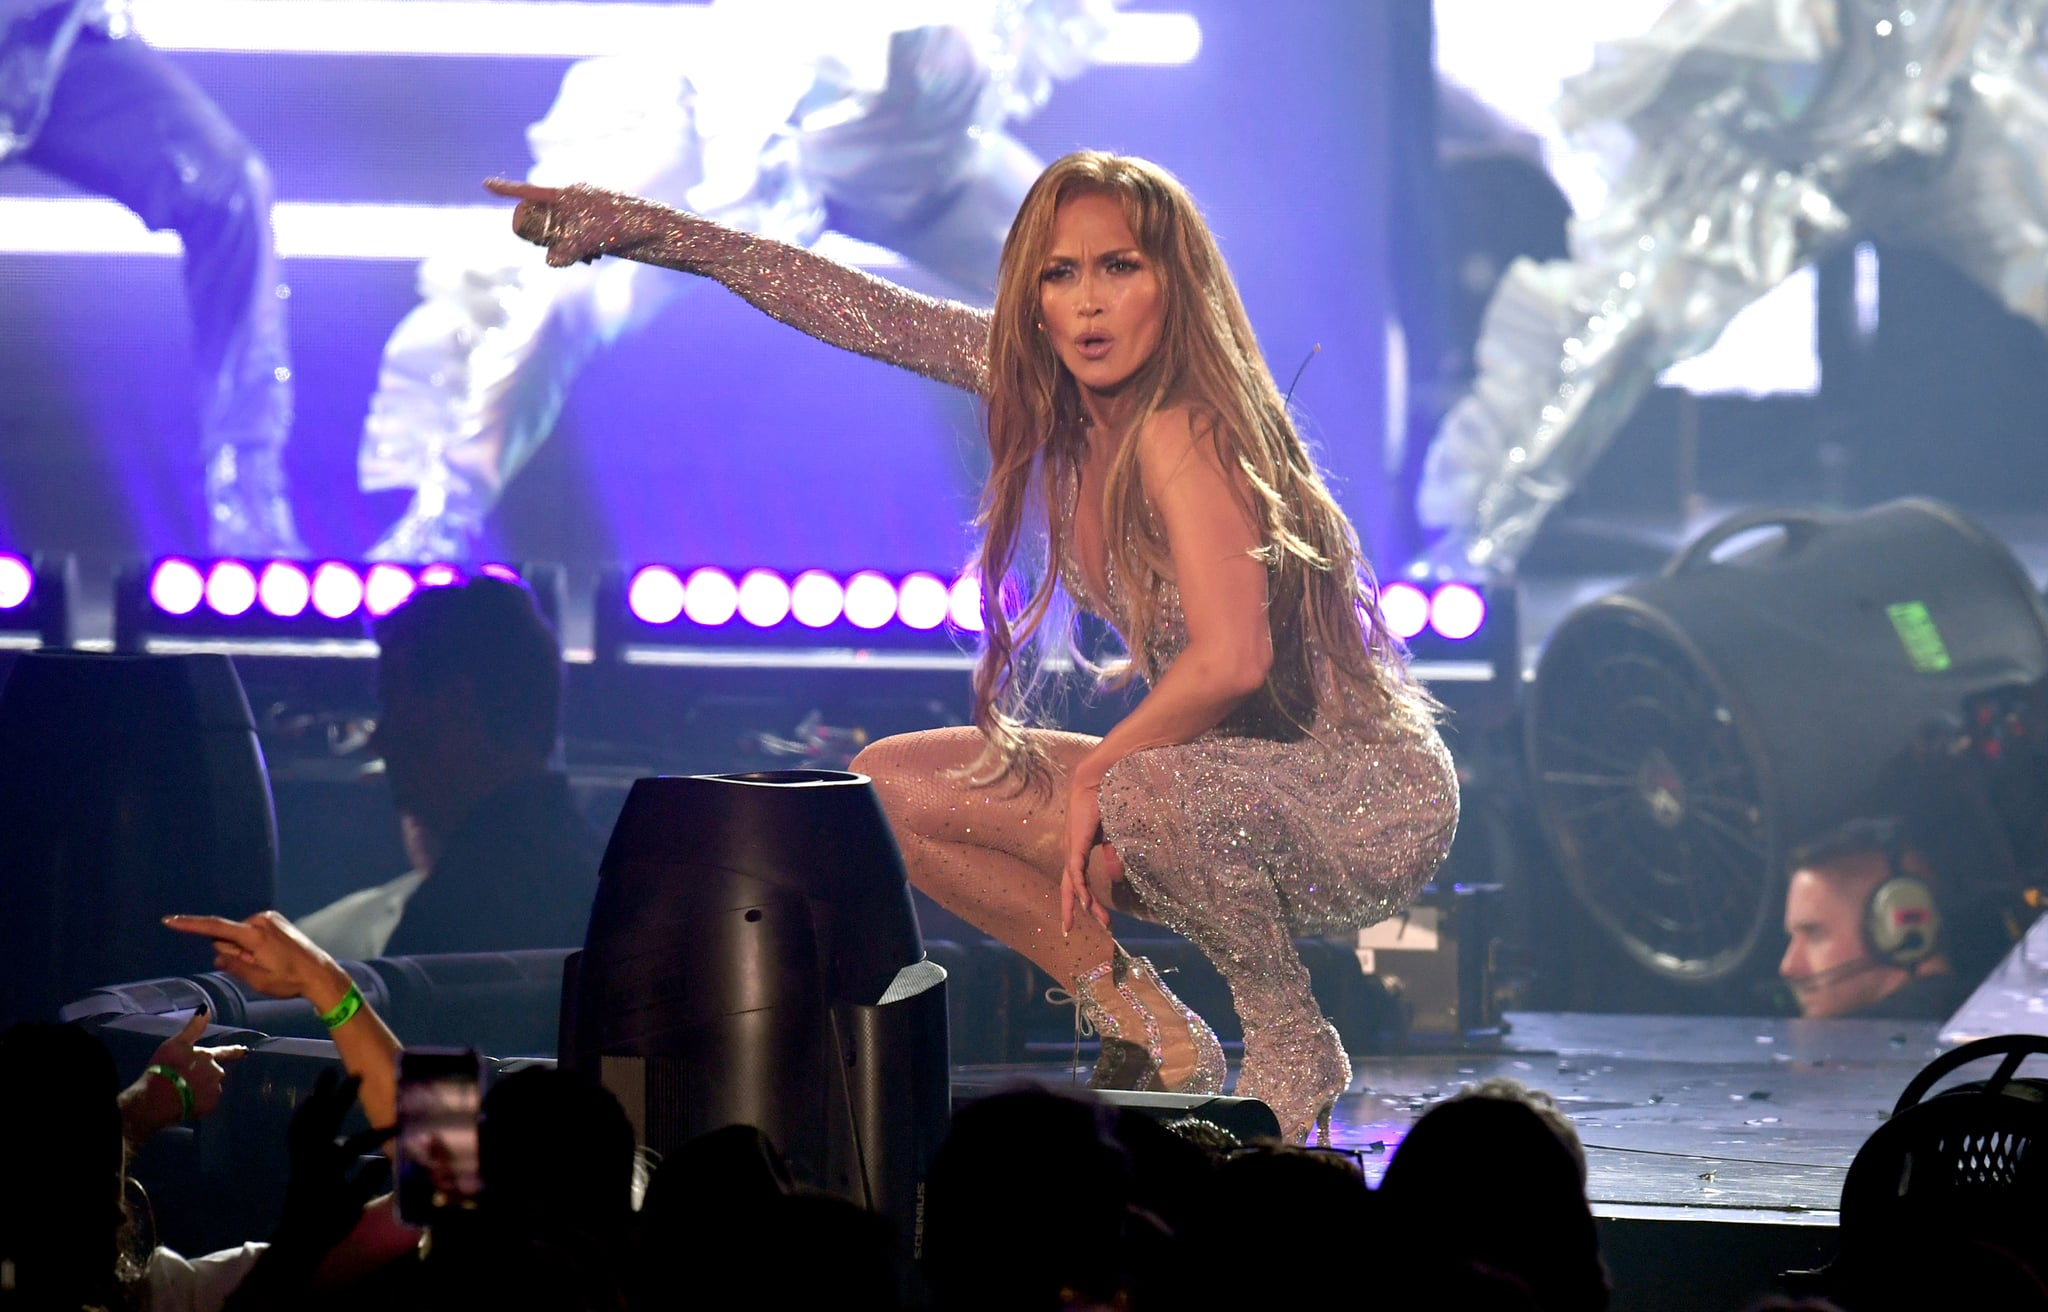 INGLEWOOD, CALIFORNIA - JUNE 07: Jennifer Lopez performs onstage during the It's My Party Tour at The Forum on June 07, 2019 in Inglewood, California. (Photo by Kevin Winter/Getty Images for ABA)